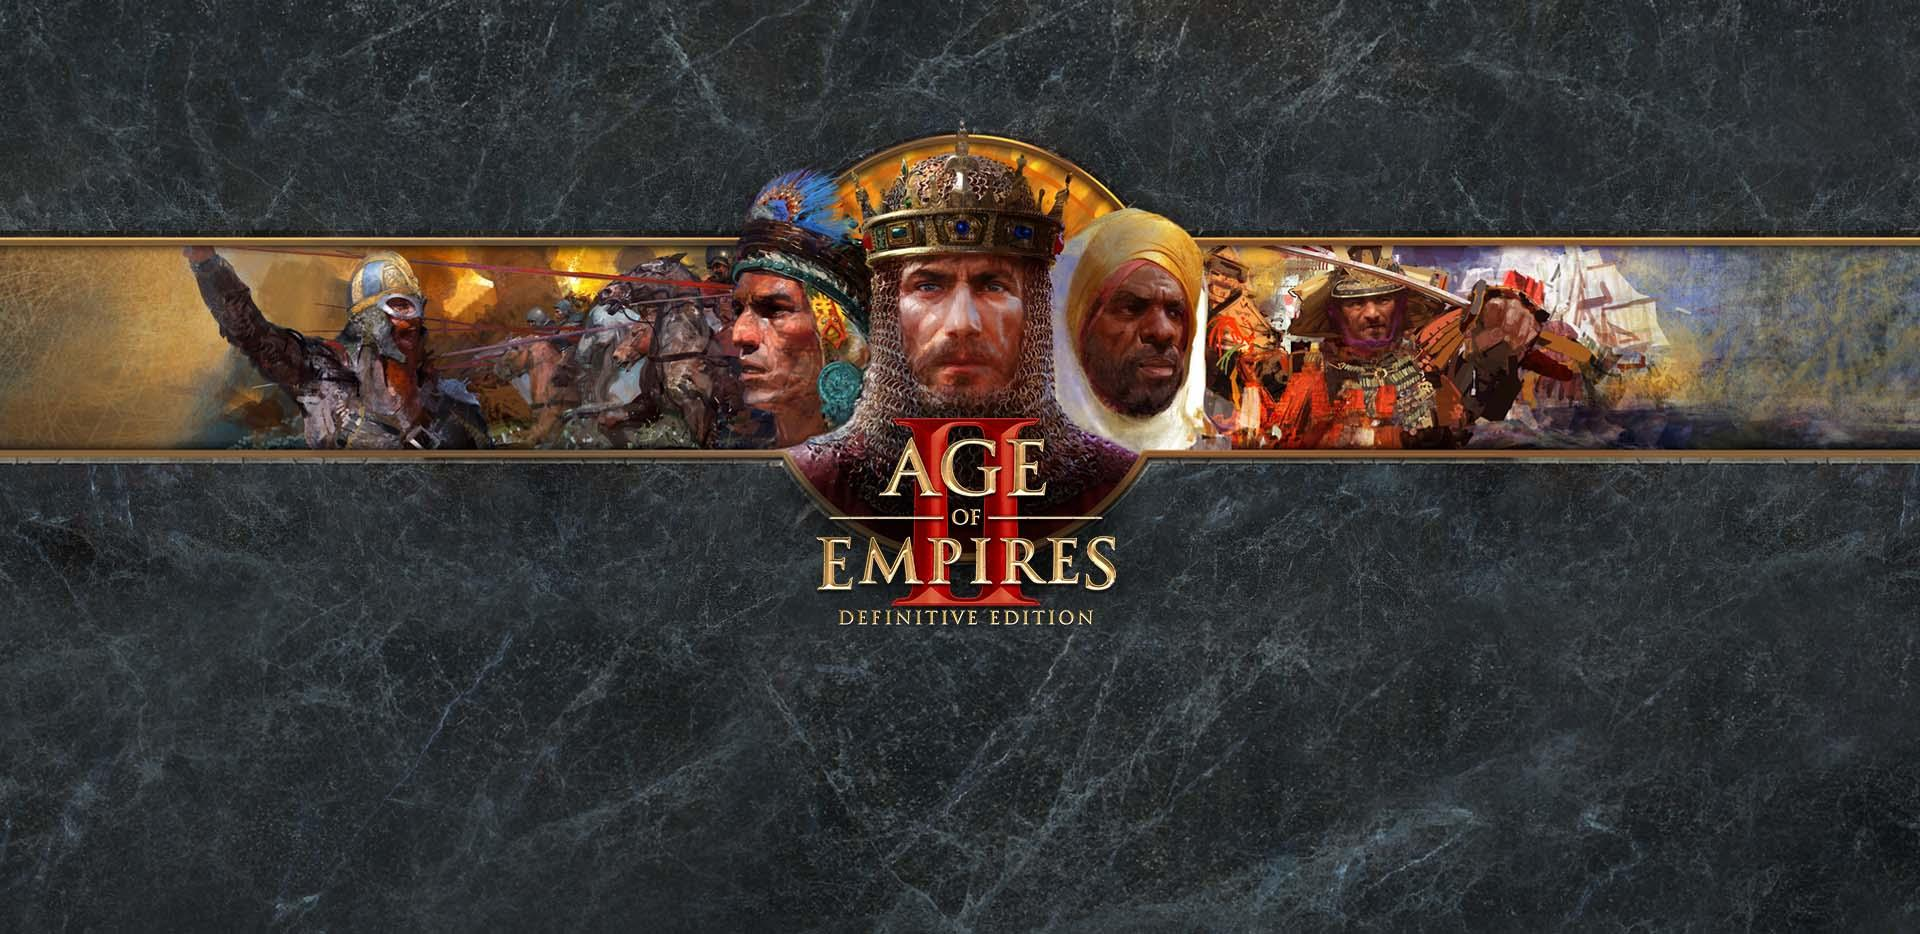 Age of Empires Definitive Edition PC Full Version Free Download